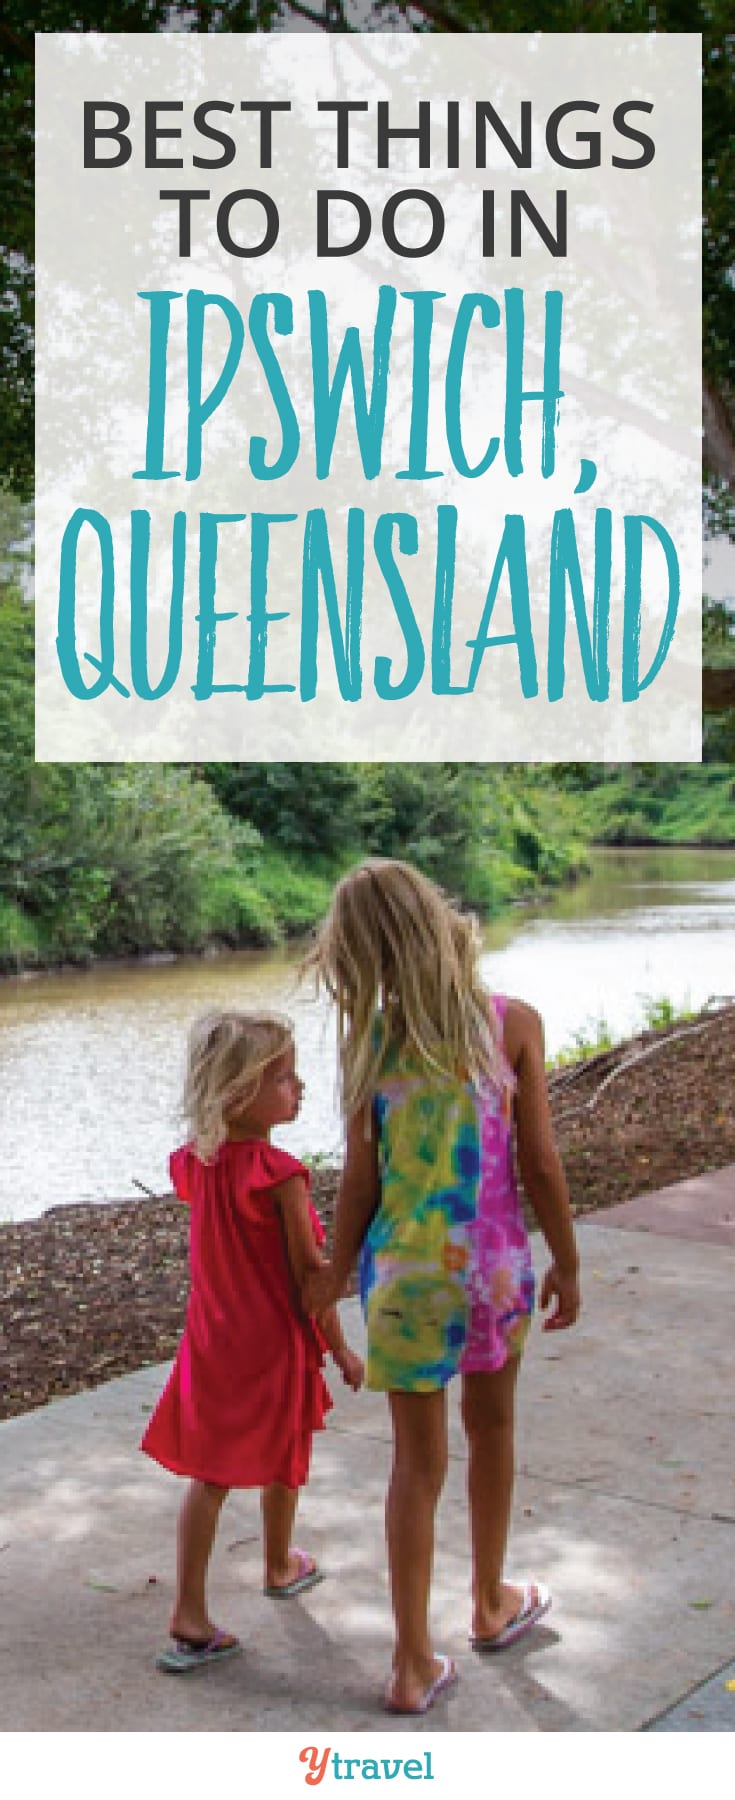 Best things to do in Ipswich. A great destination in Queensland to escape the hustle and bustle. Check out the awesome waterparks, amazing Ipswich restaurants and history museum.